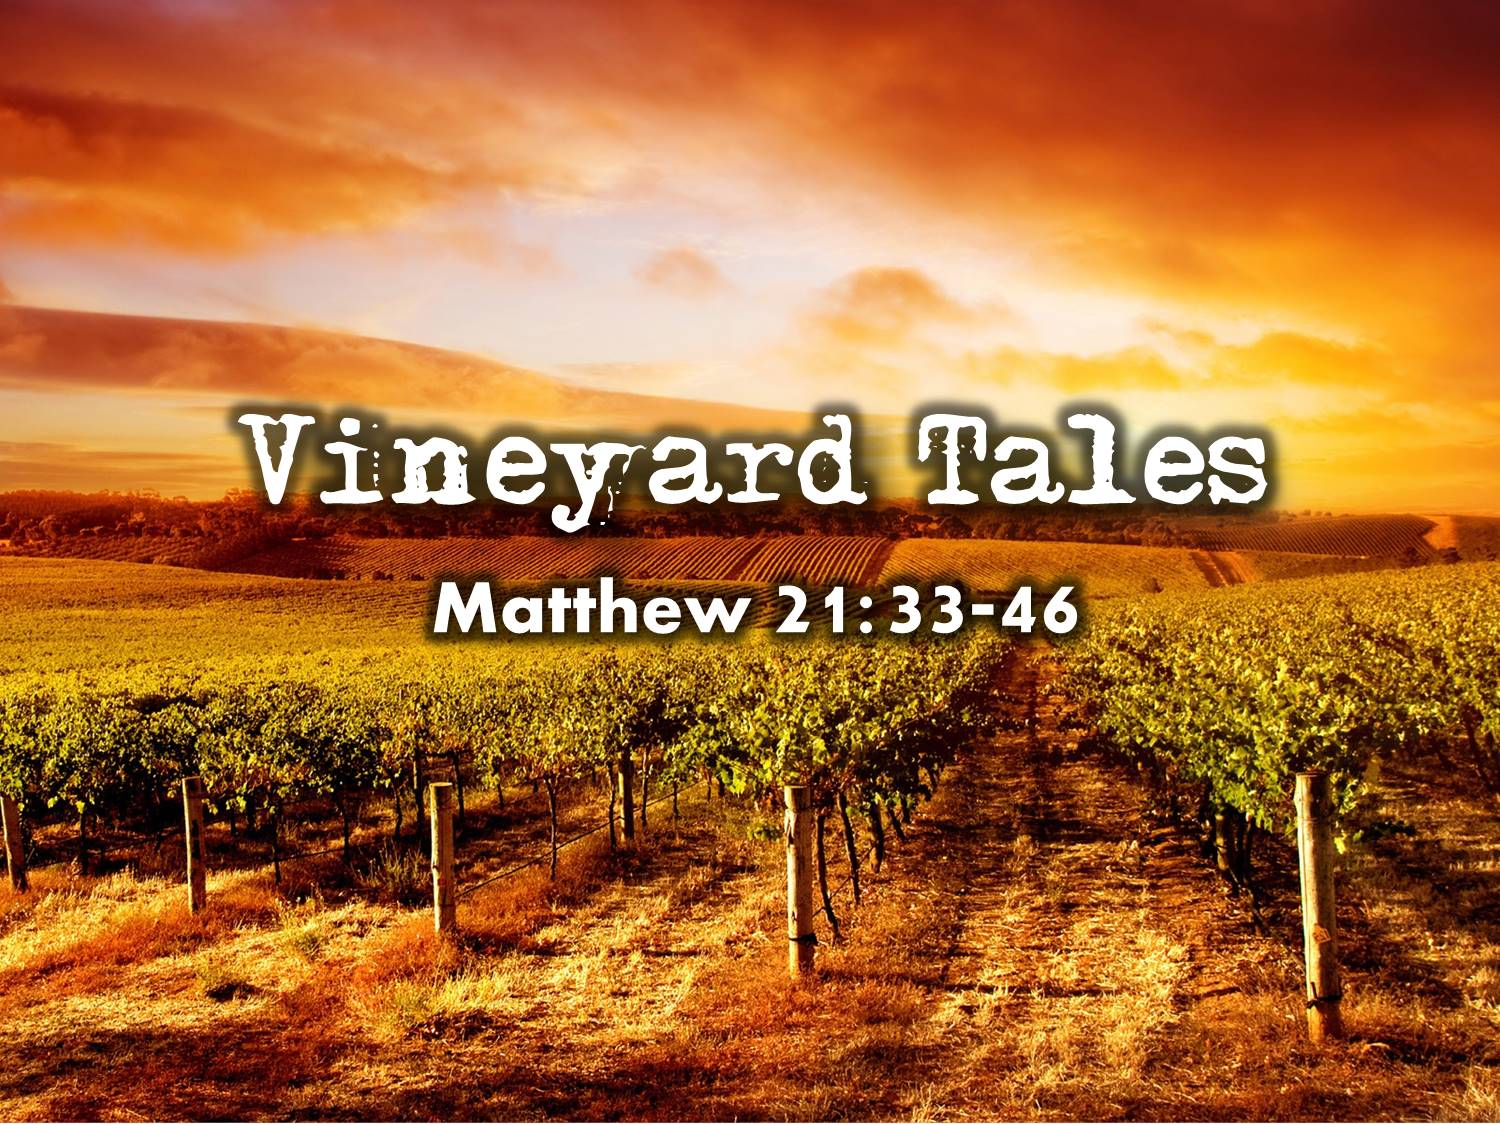 2014 10 05 Vineyard Tales (Web Background)